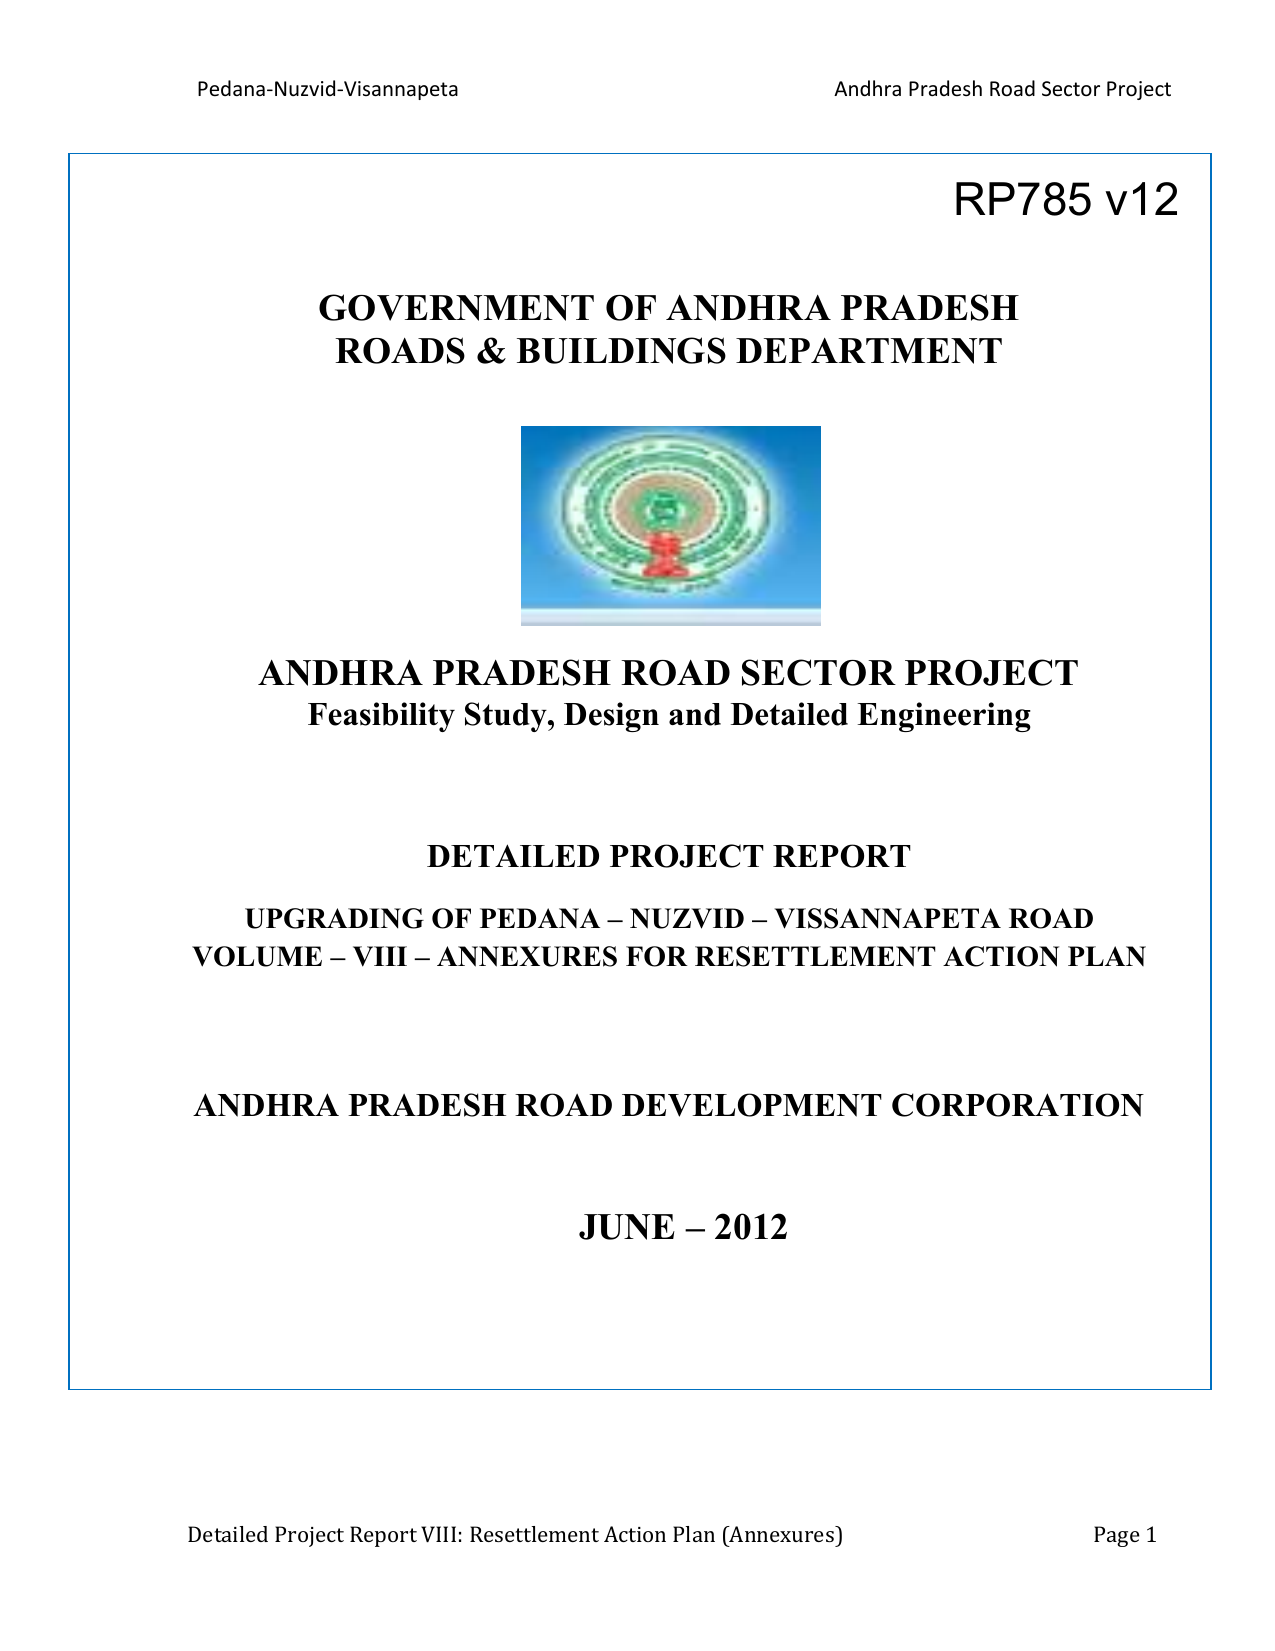 GOVERNMENT OF ANDHRA PRADESH ROADS & BUILDINGS